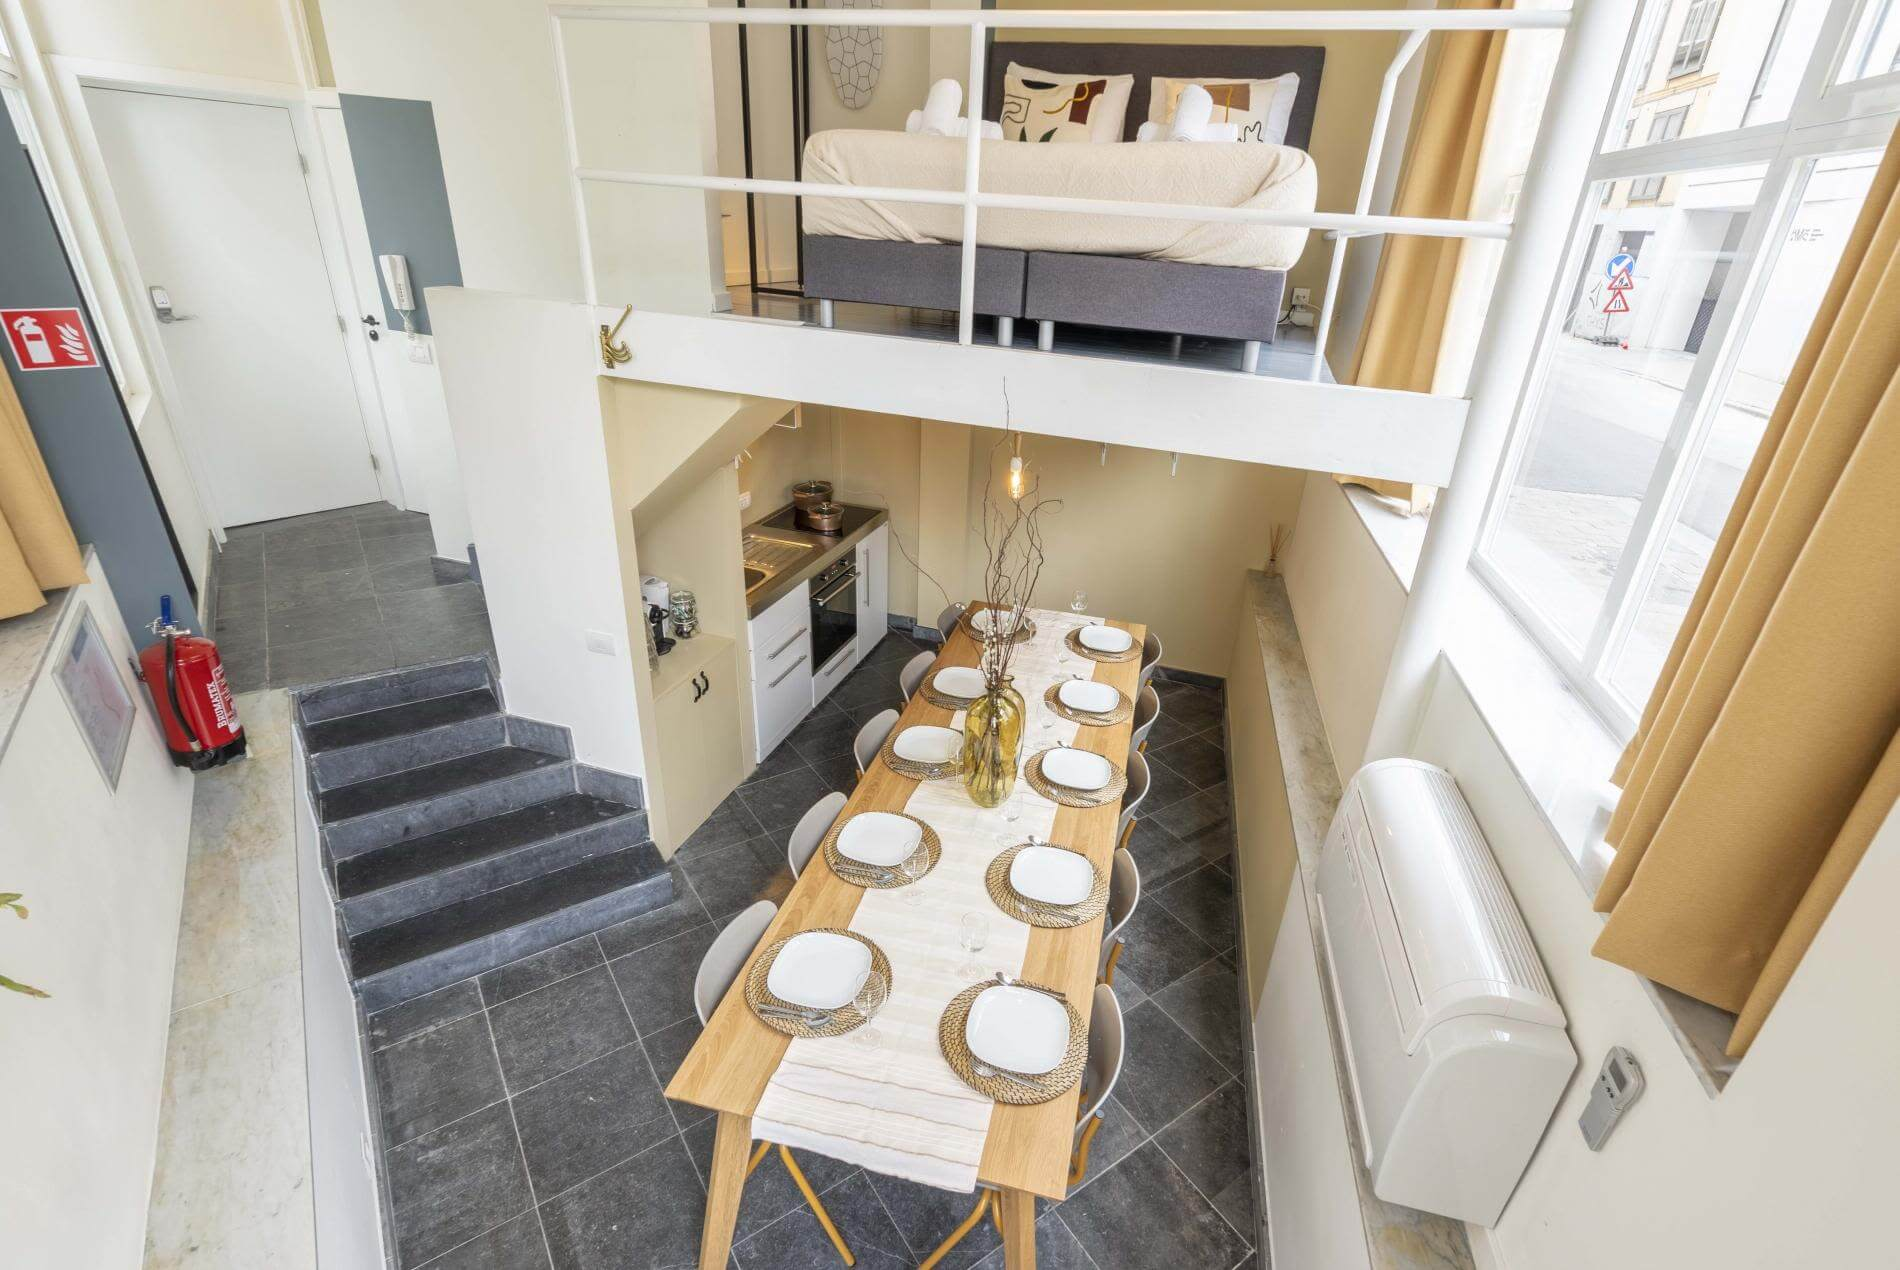 Studio accommodation in Antwerp for up to 2 people